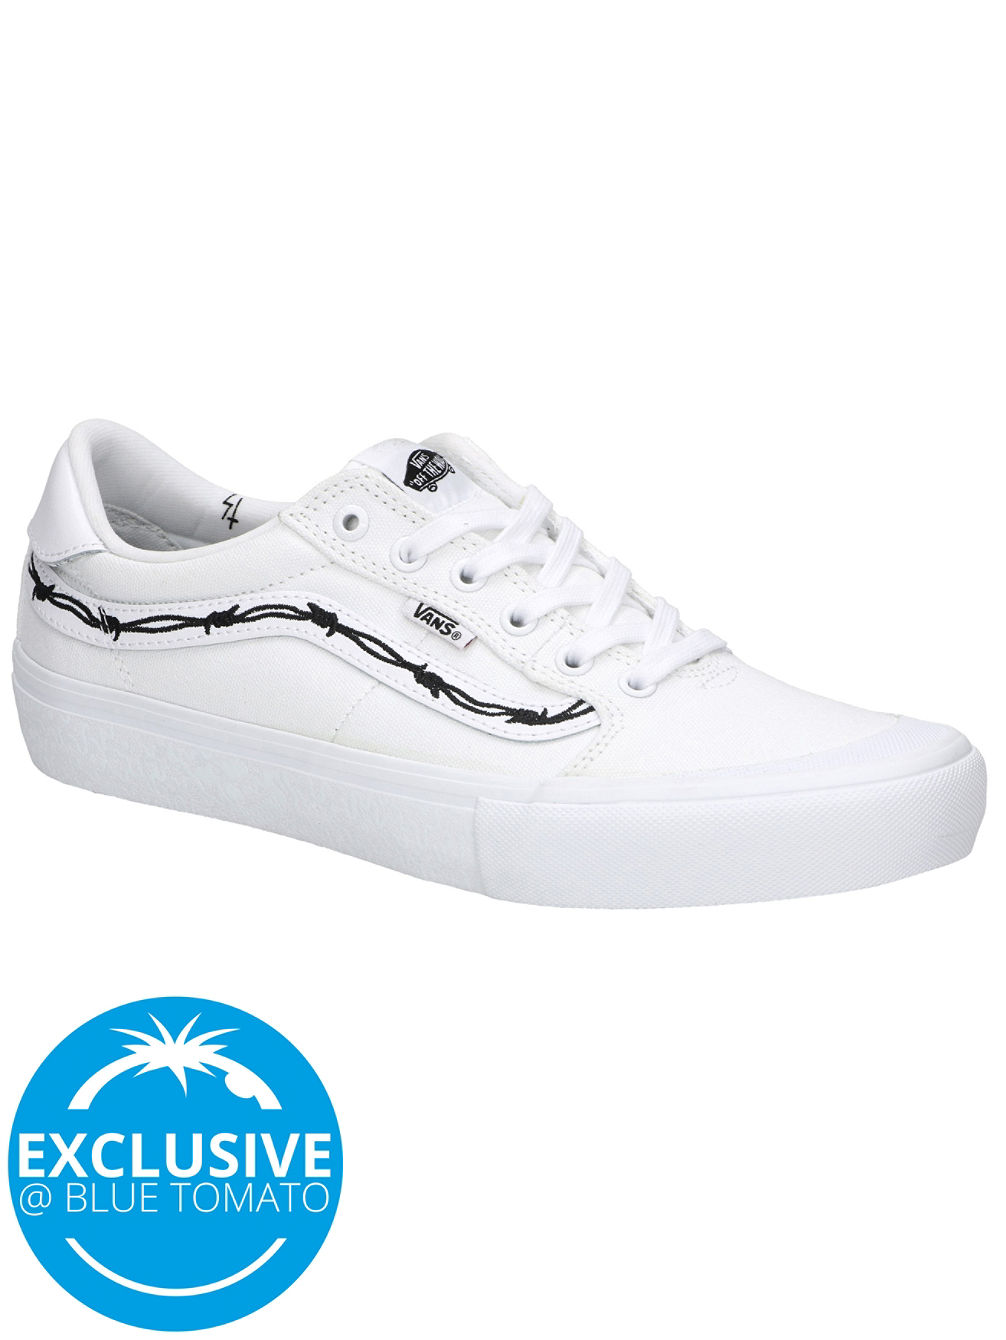 Buy Vans X Sketchy Tank Style 112 Pro Skate Shoes online at blue-tomato.com f69b90bd63